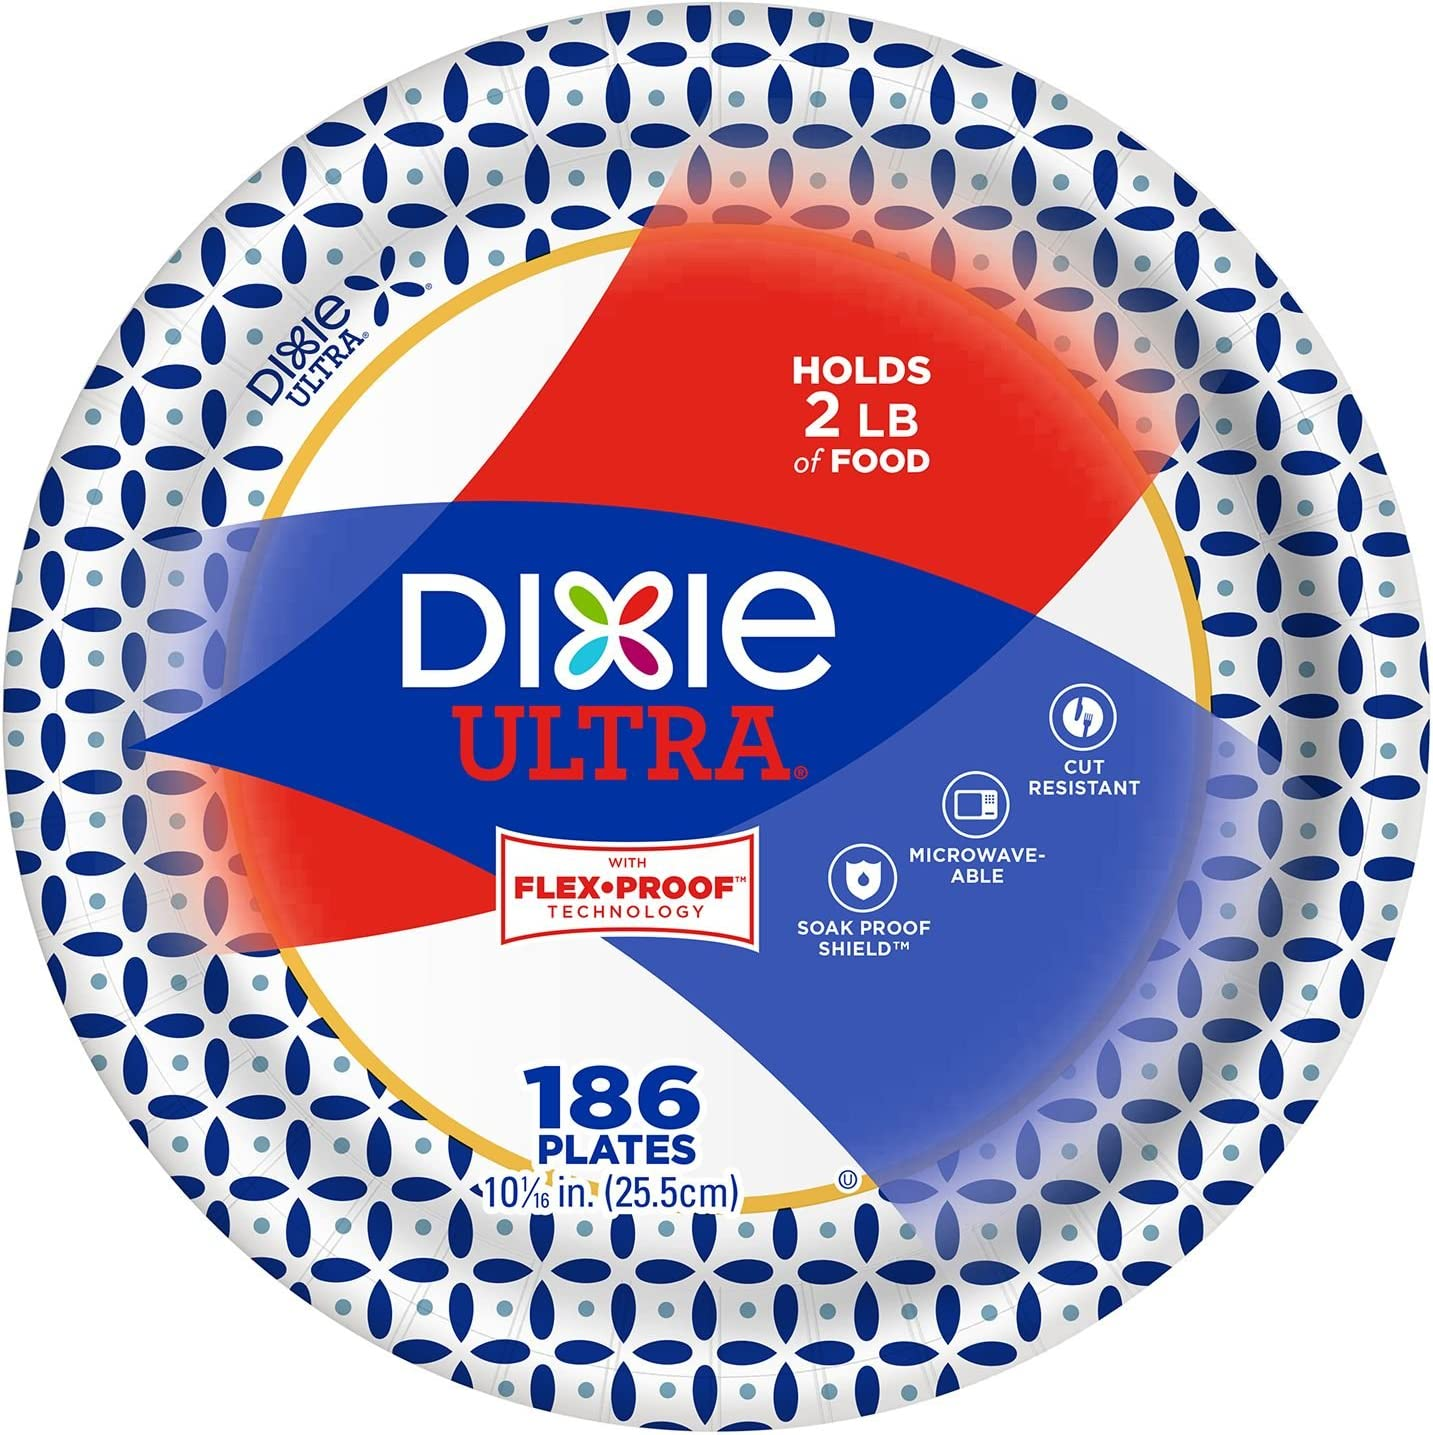 """Dixie 10 1/16"""" Big Party Pack, Microwavable Ultra Paper Plates, Soak Proof Shield - Heavy Duty Plates, - 186 Plates"""